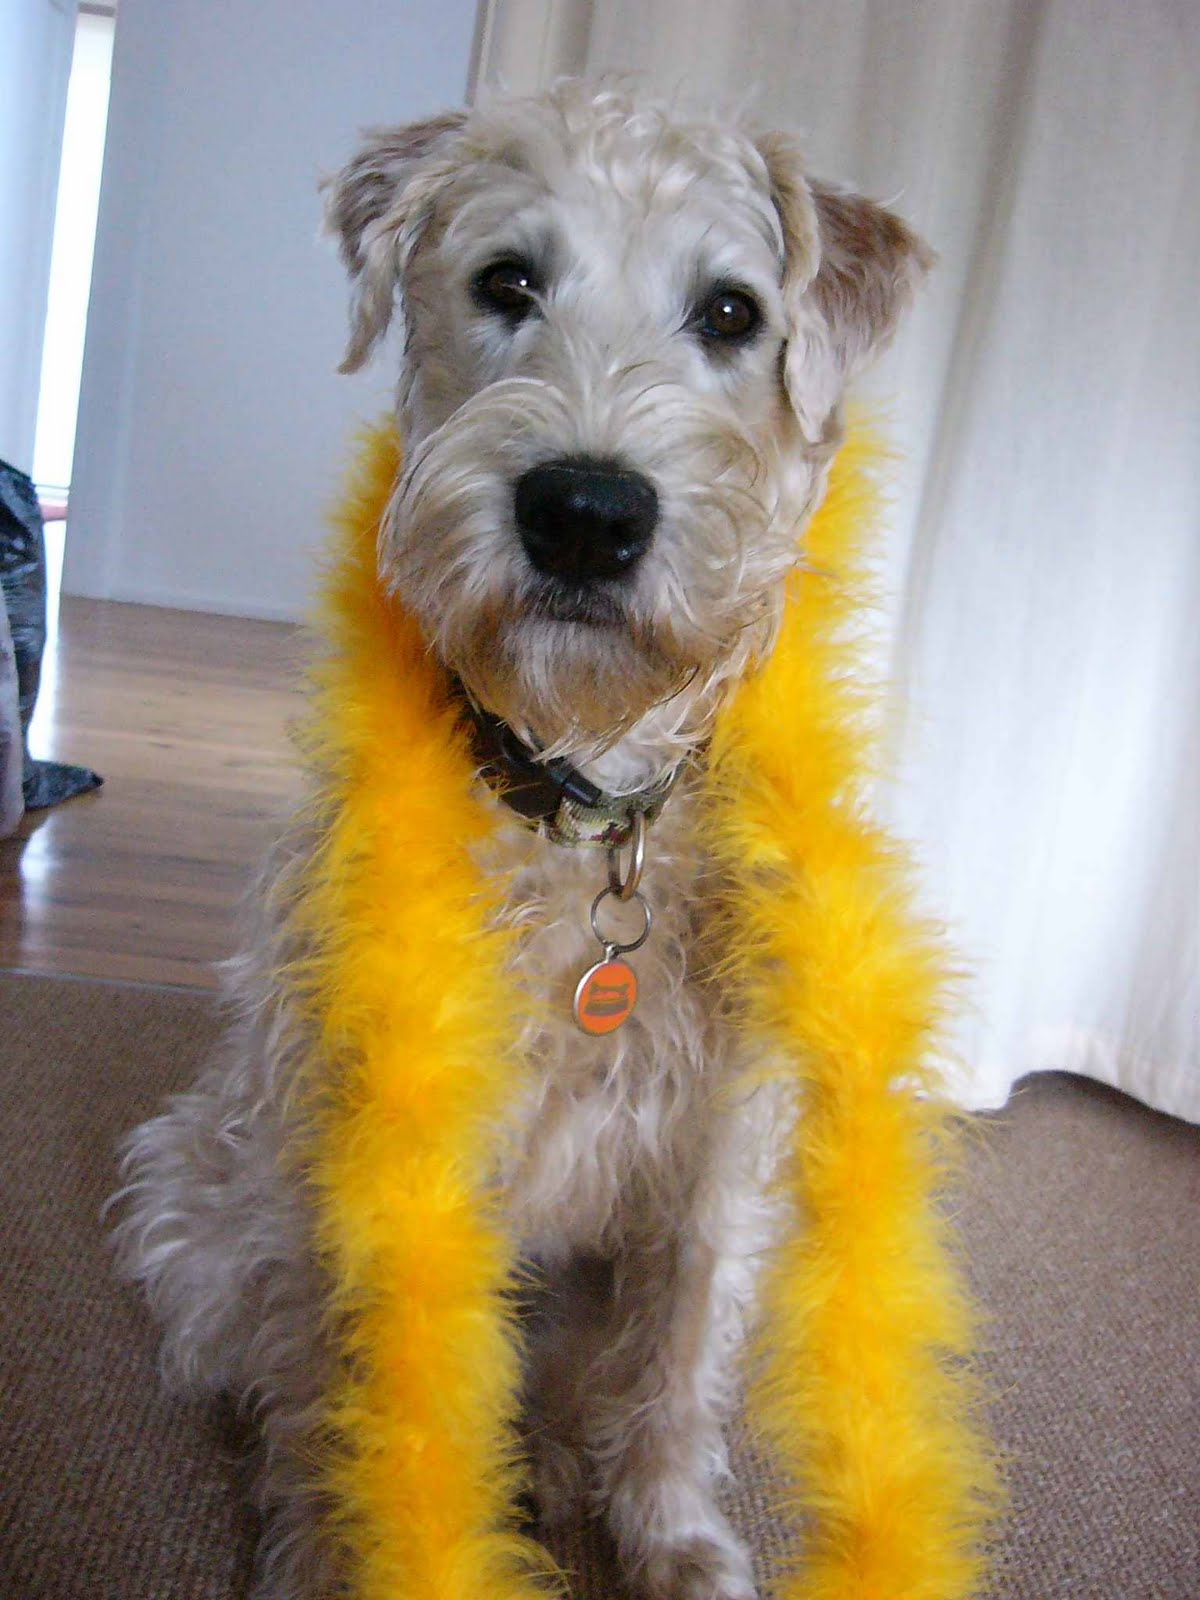 Irish Soft Coated Wheaten Terrier called Nessa